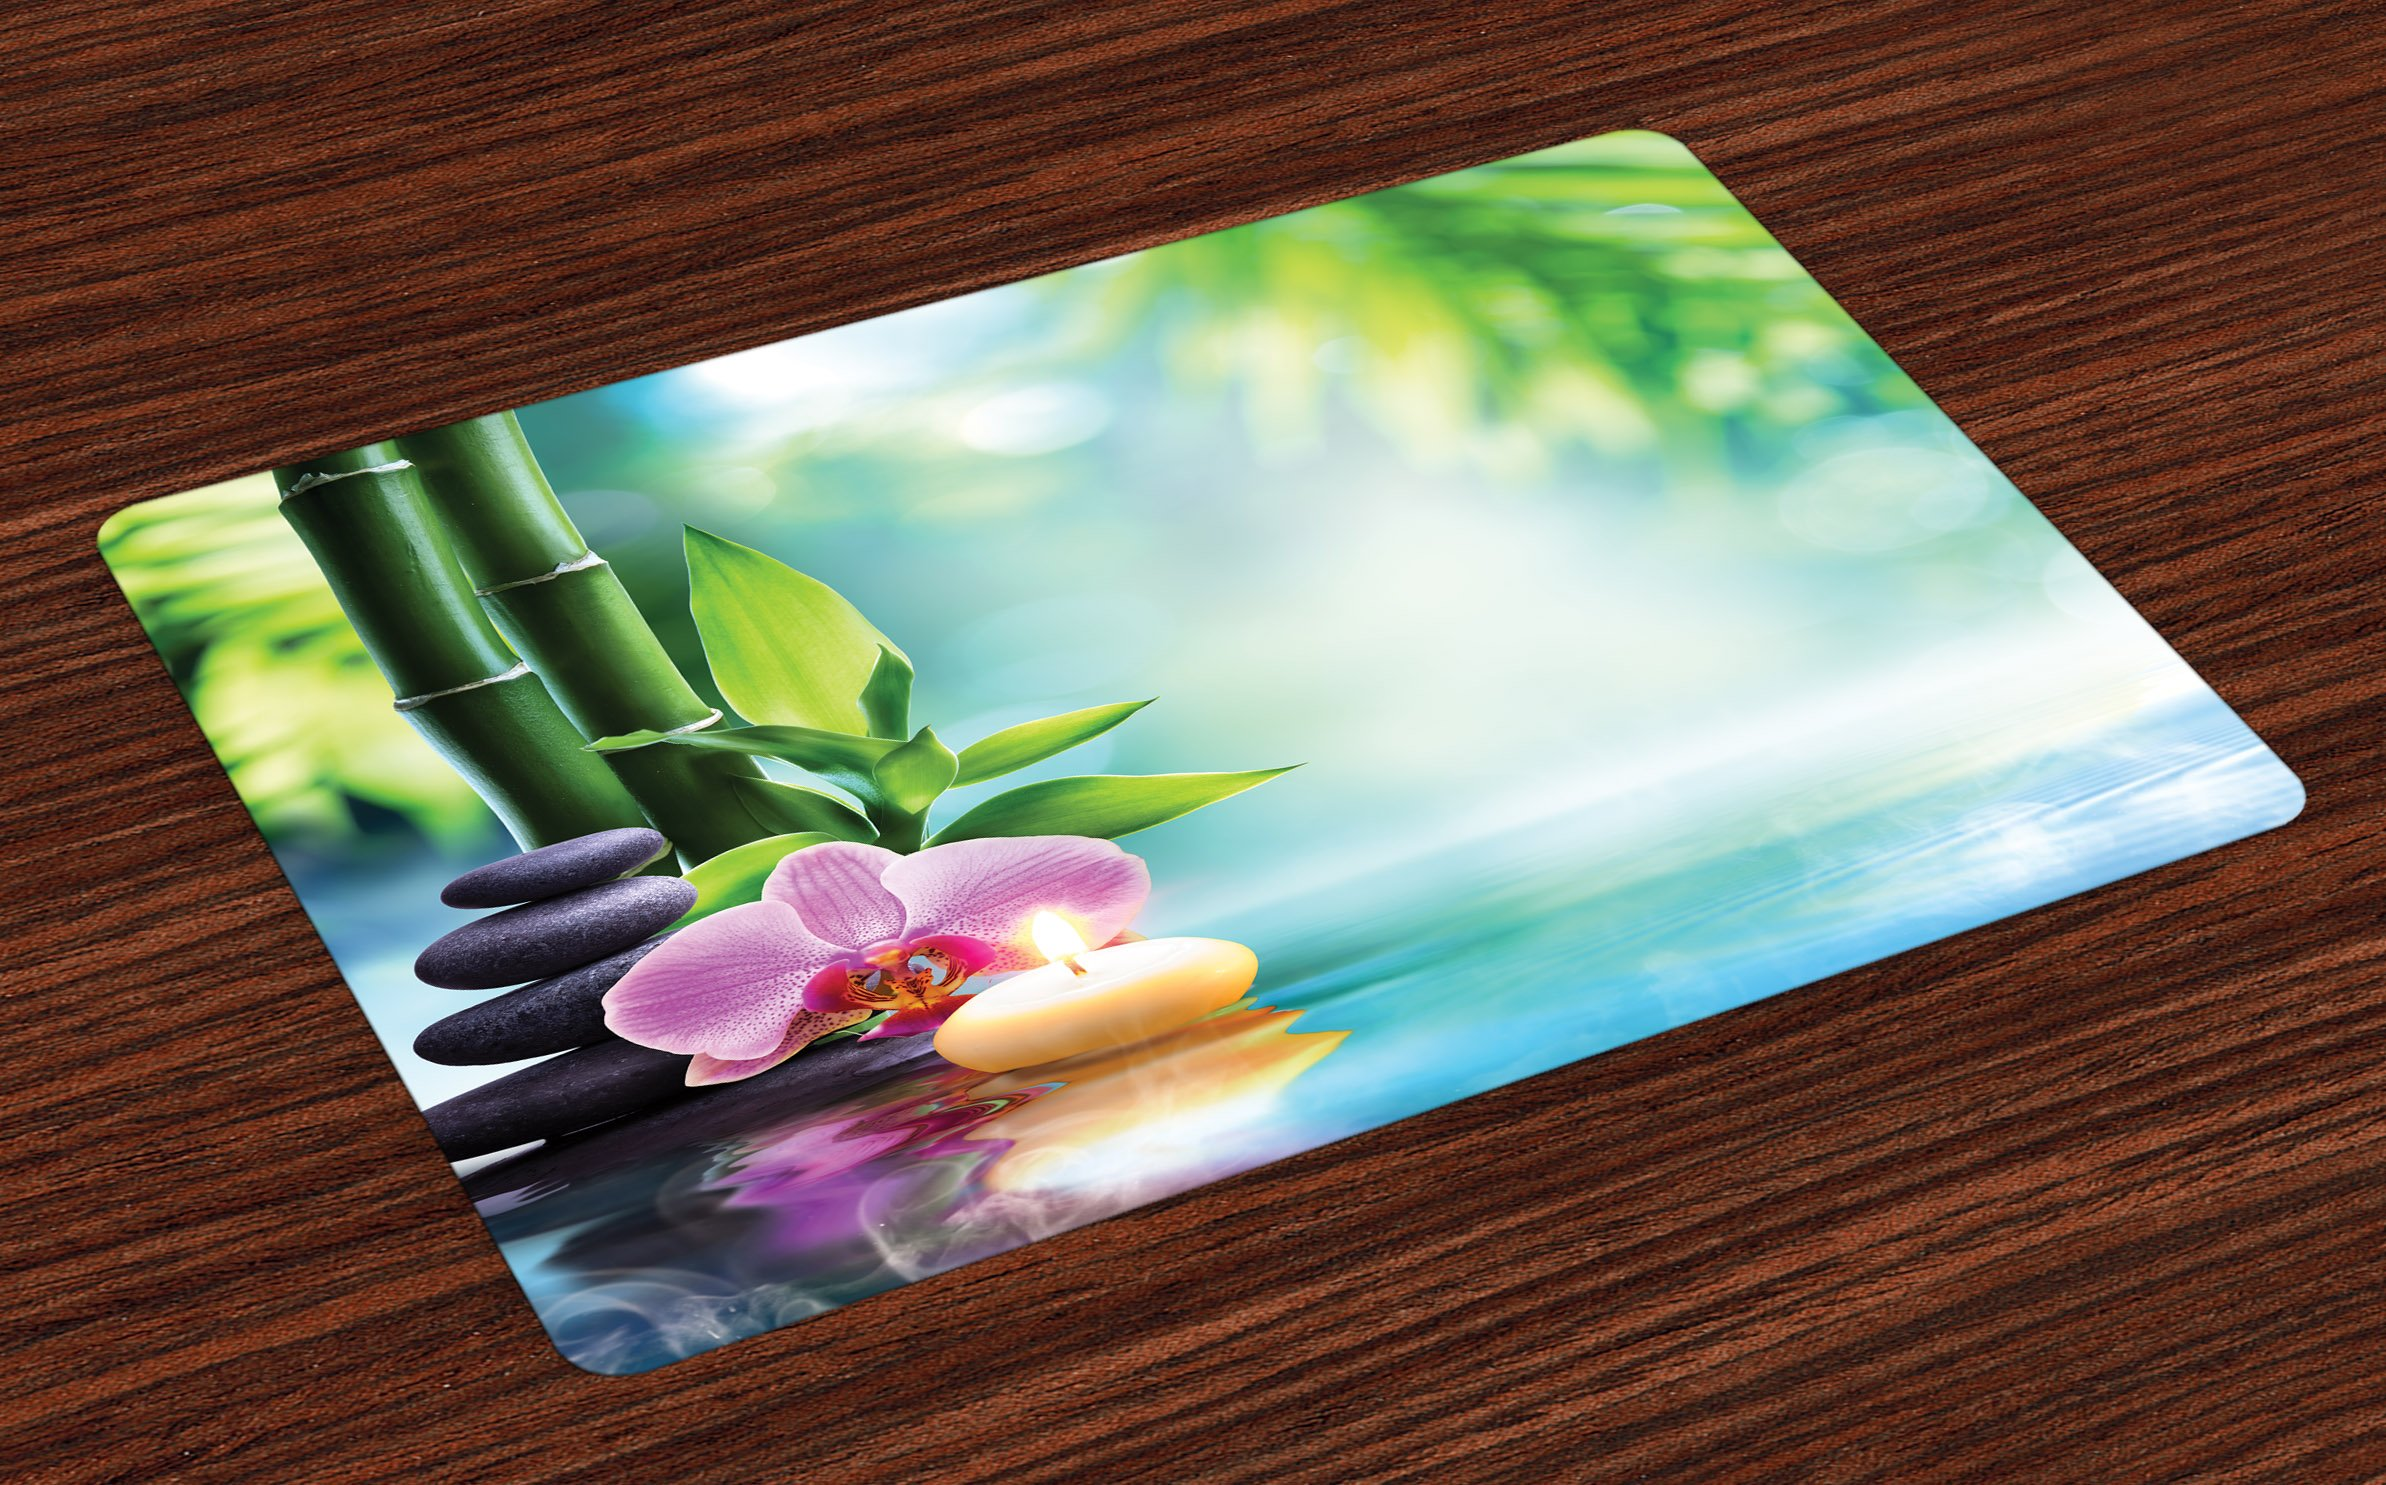 Ambesonne Spa Place Mats Set of 4, Symbolic Spa Features with Candle and Bamboos Tranquil and Thoughtful Life Nature Print, Washable Fabric Placemats for Dining Room Kitchen Table Decor, Multicolor by Ambesonne (Image #1)